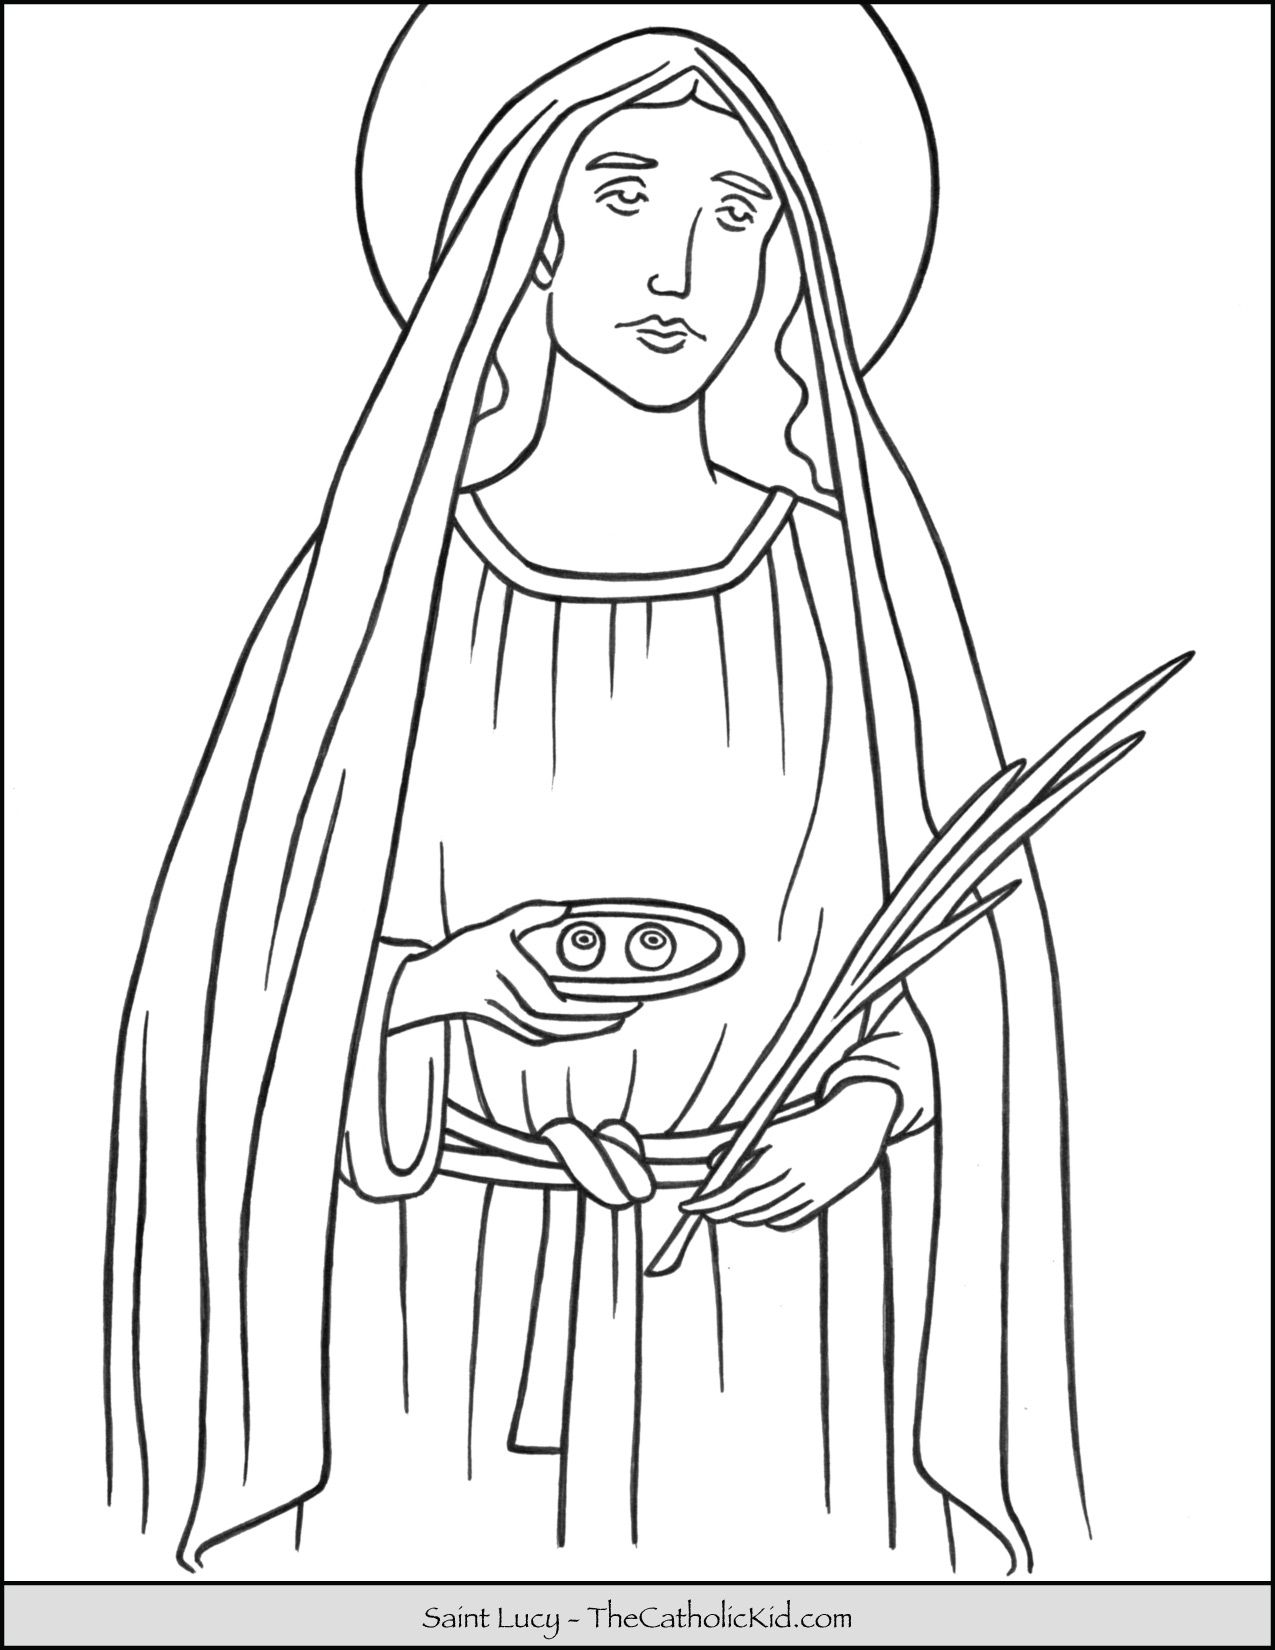 Saint Lucy Coloring Page Thecatholickid Com Saint Lucy